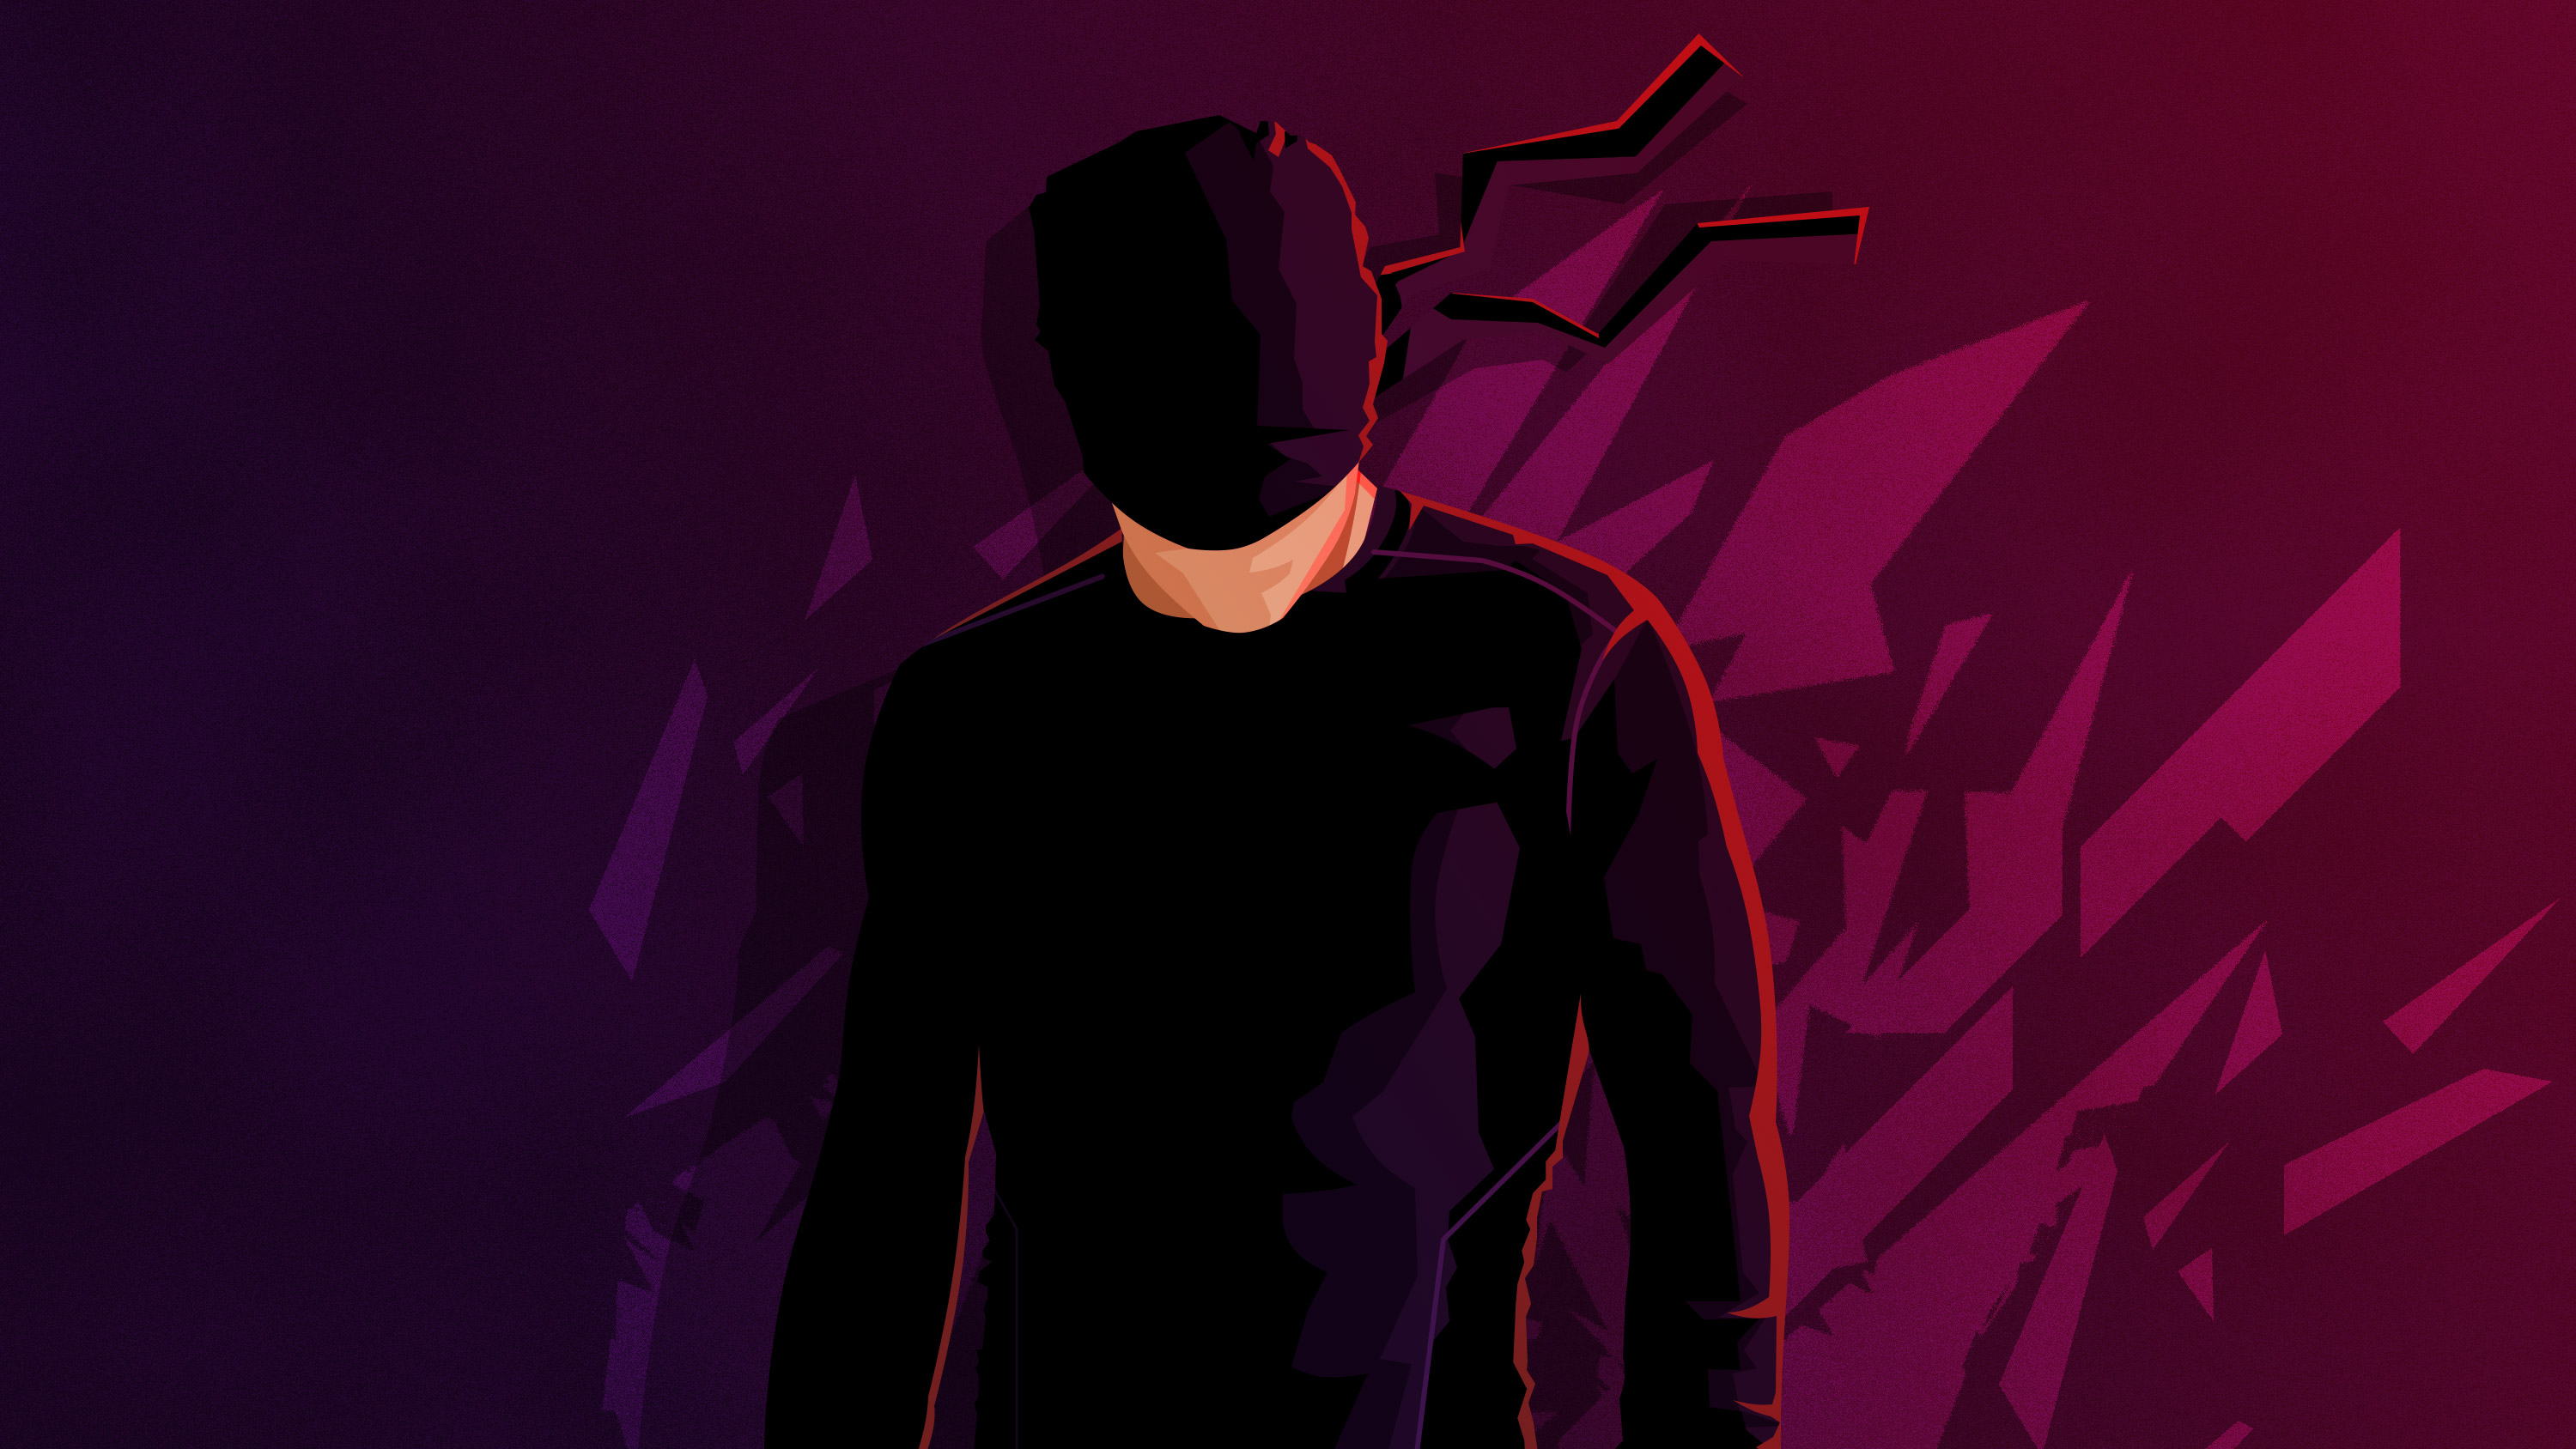 Daredevil minimalism hd hd superheroes 4k wallpapers - Tv series wallpaper 4k ...